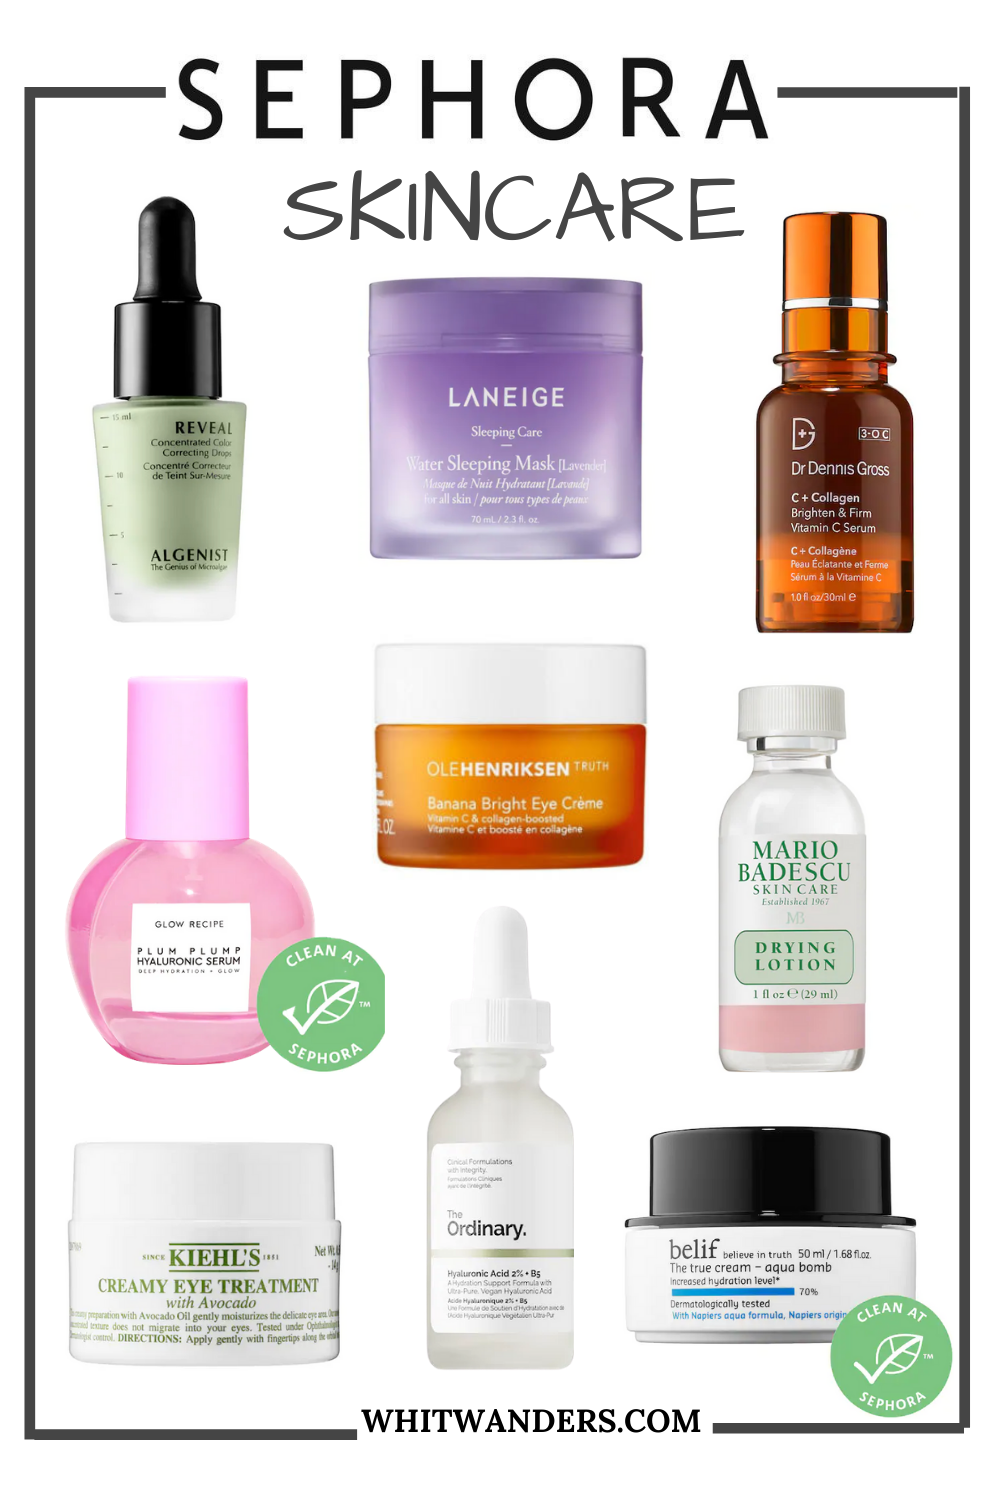 Sephora Beauty Insider Sale by popular Seattle beauty blog, Whit Wanders: collage image of Sephora skincare products.